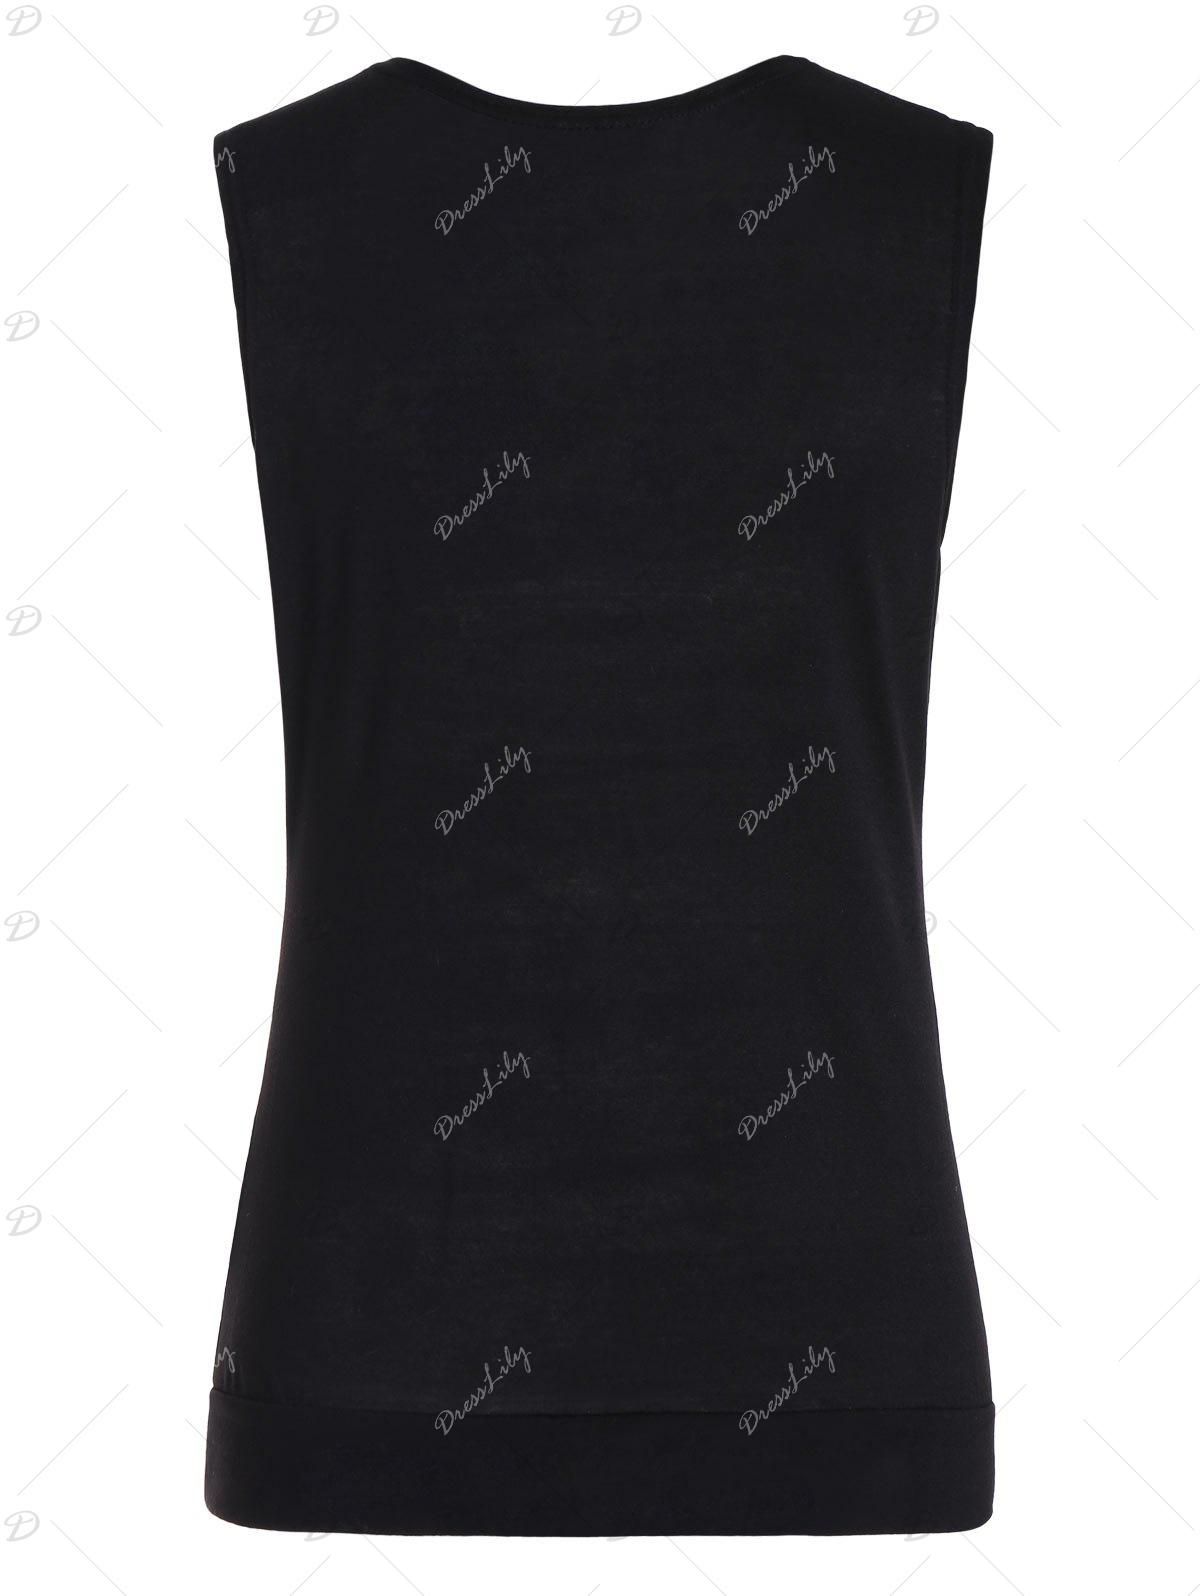 Drape Neck Side Button Tank Top - BLACK XL